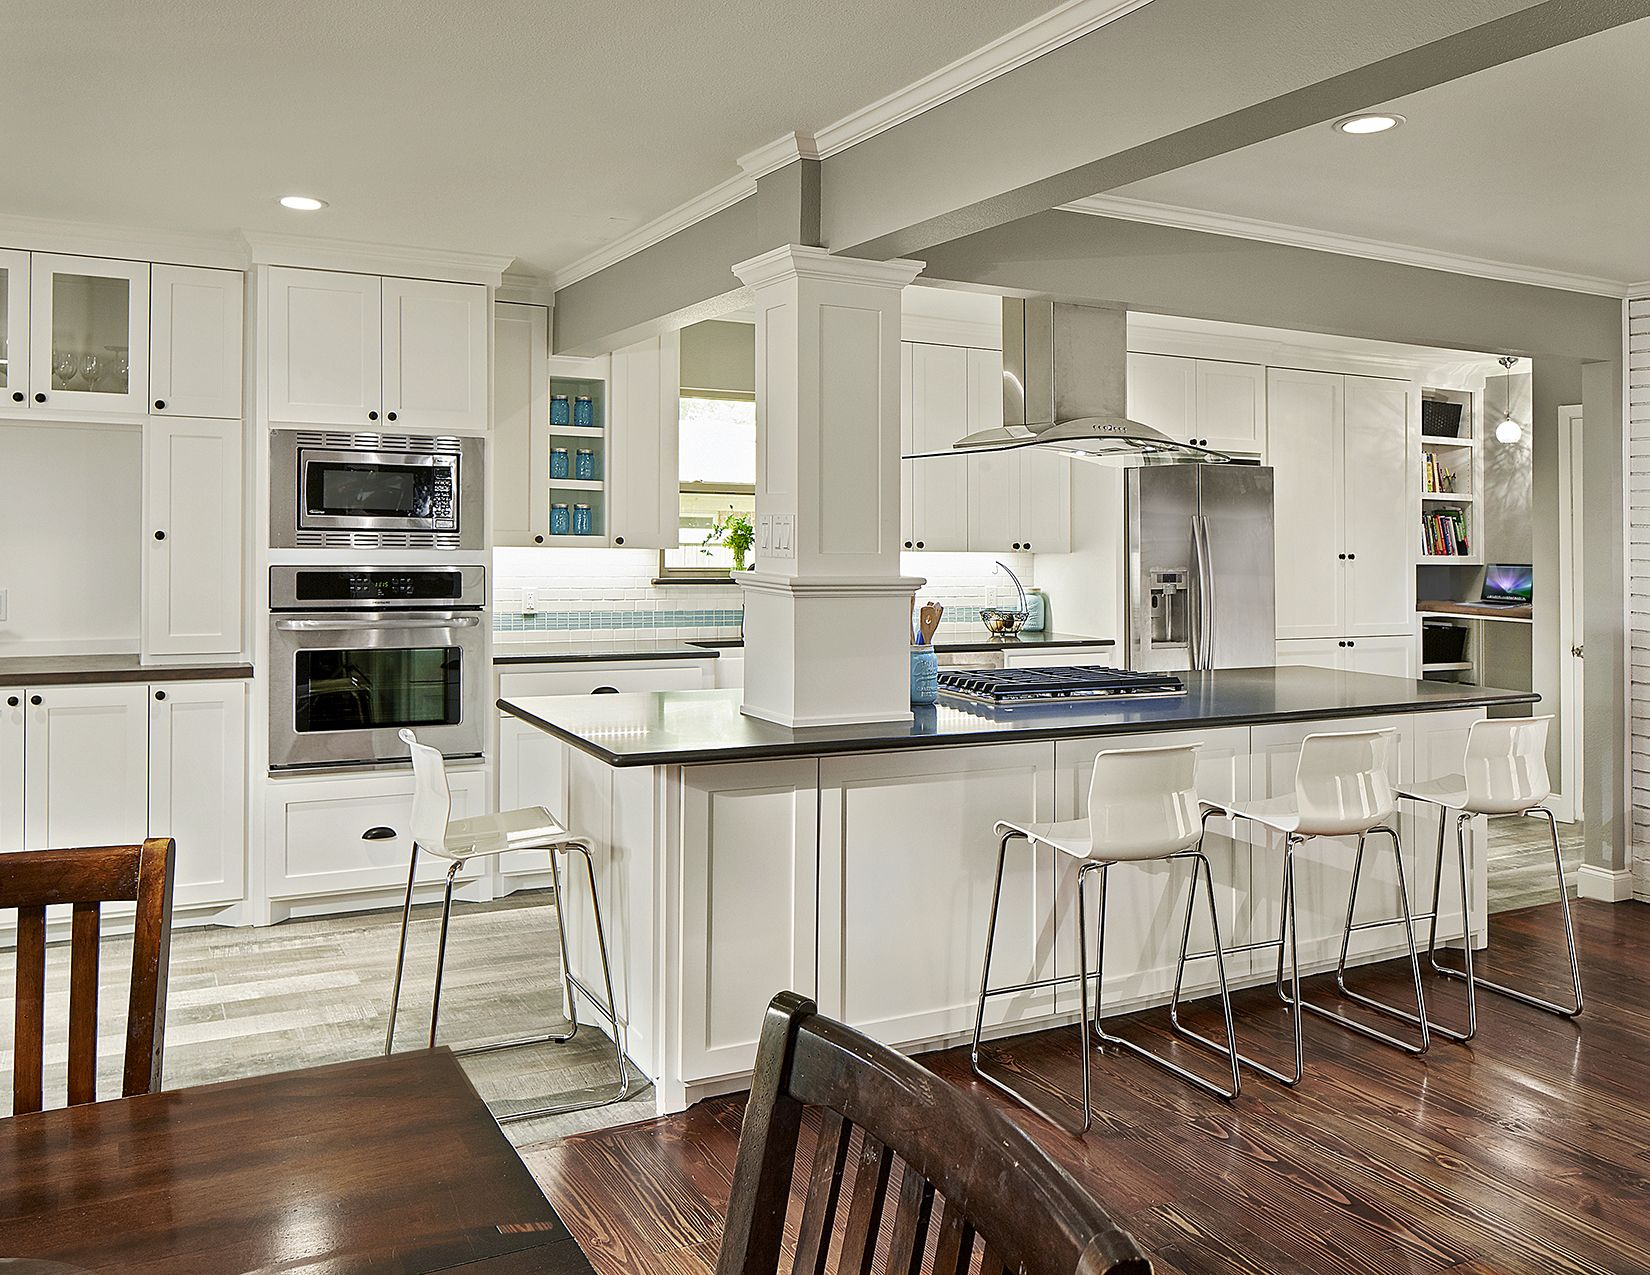 BRY JO Roofing   Remodeling   2016 NARI Dallas Contractor of the Year   Kitchen. 29 best images about Kitchens on Pinterest   Transitional kitchen